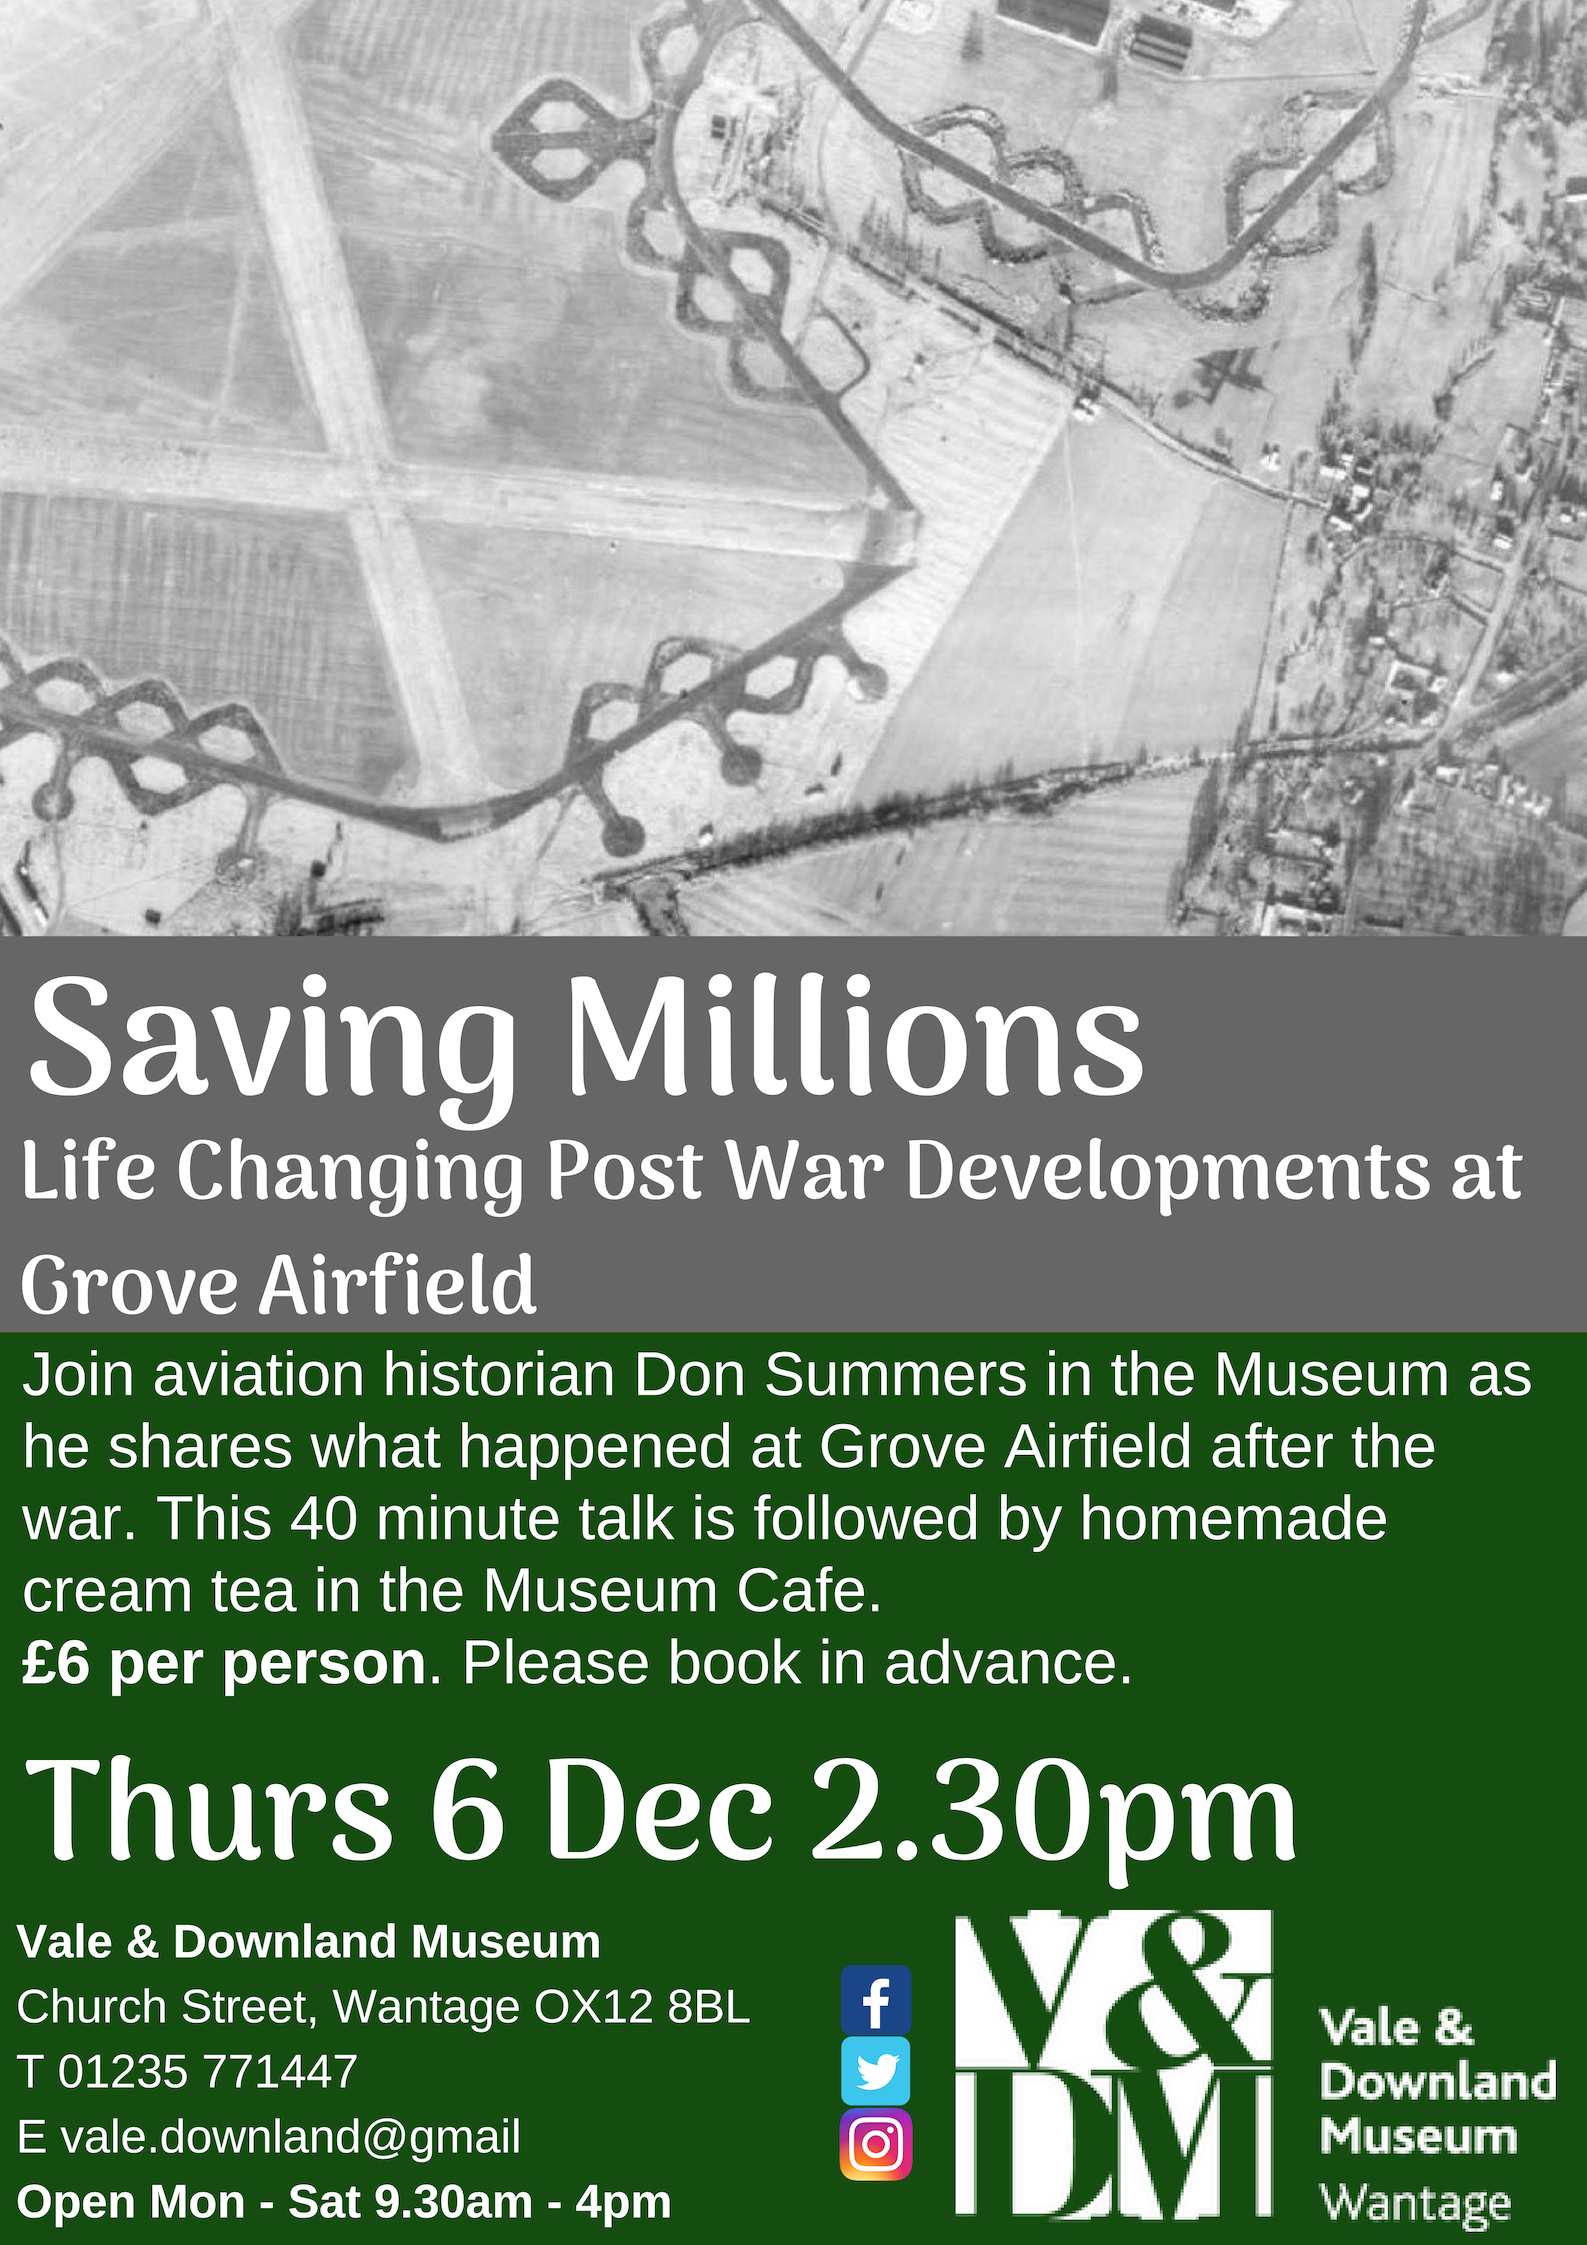 Saving Millions: Life Changing Post War Development at Grove Airfield